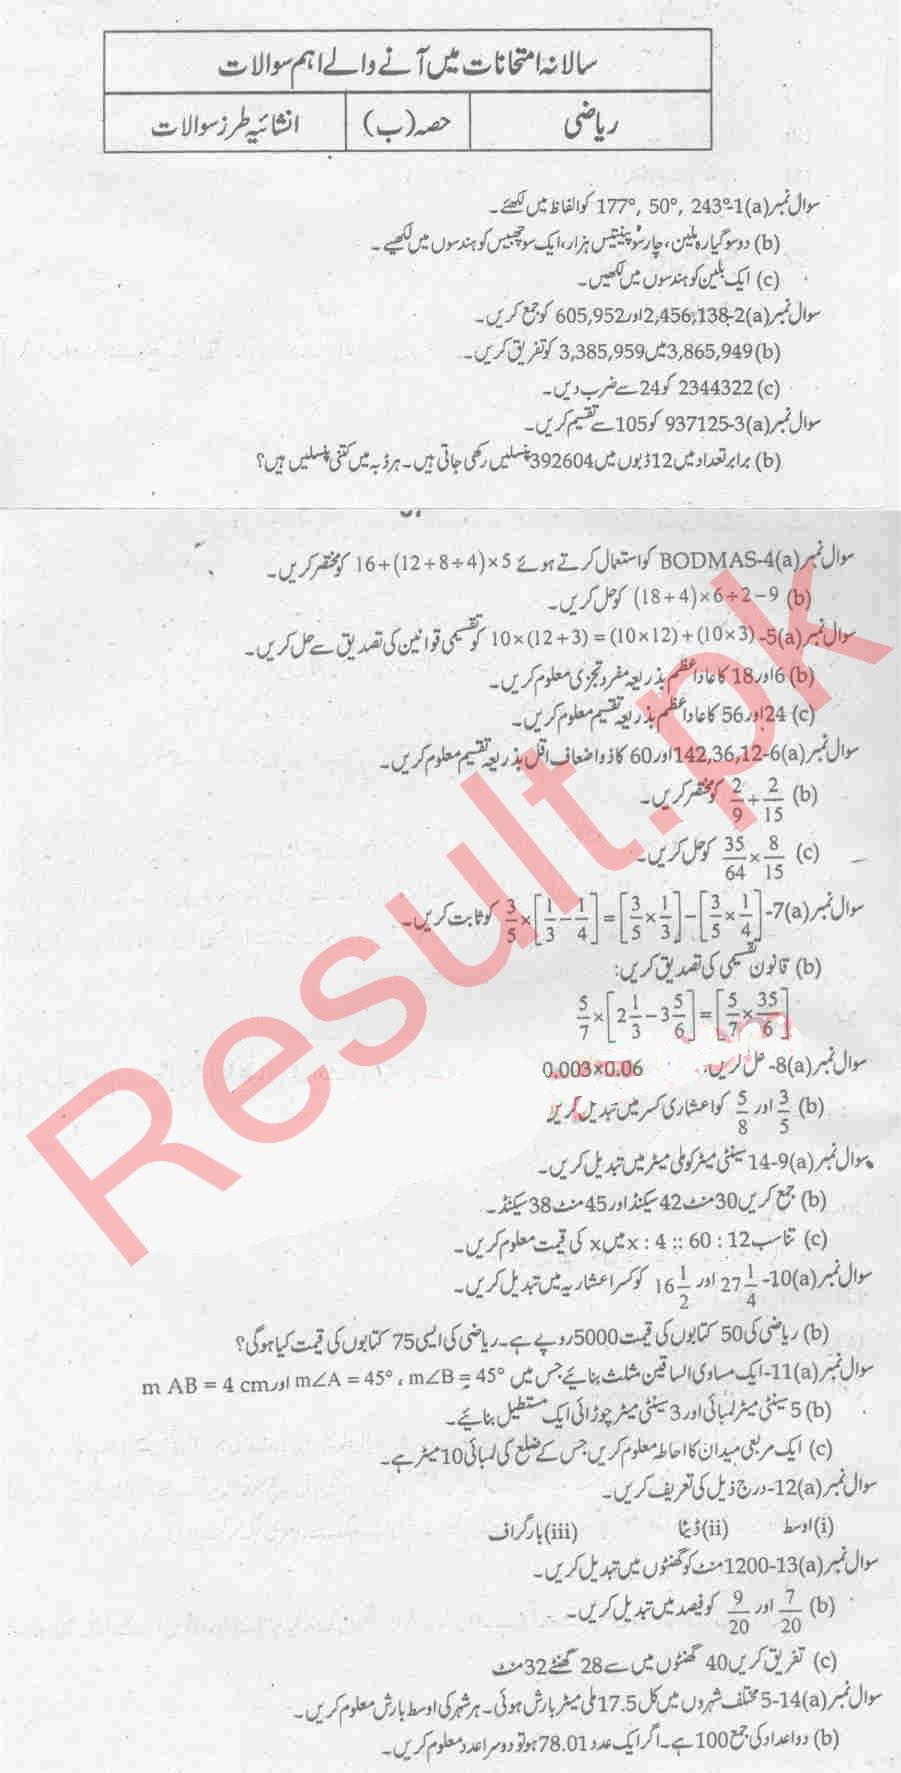 Punjab Education Commission Past Paper 2018 5th Class, Fifth